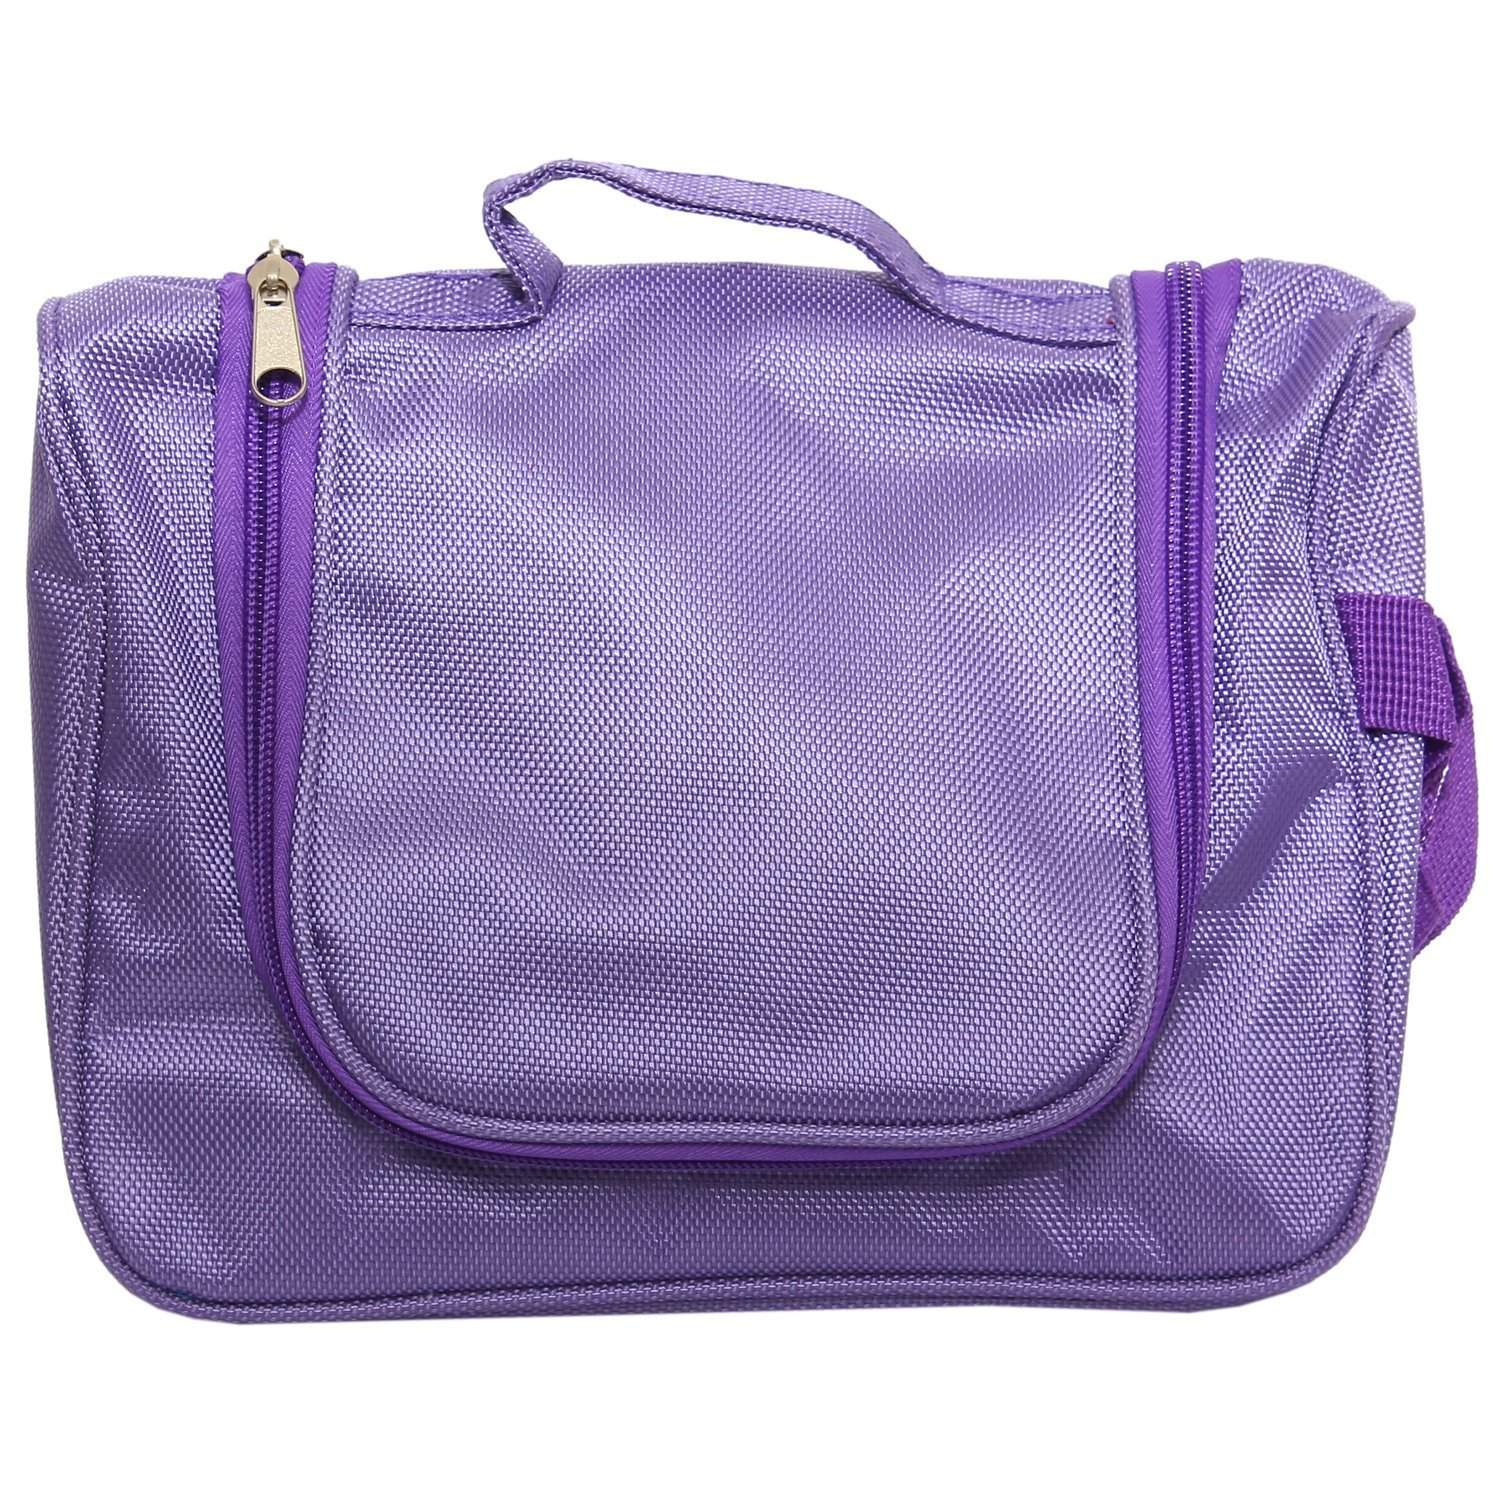 Makeup Pouch (Purple) - Bagaholics Gift